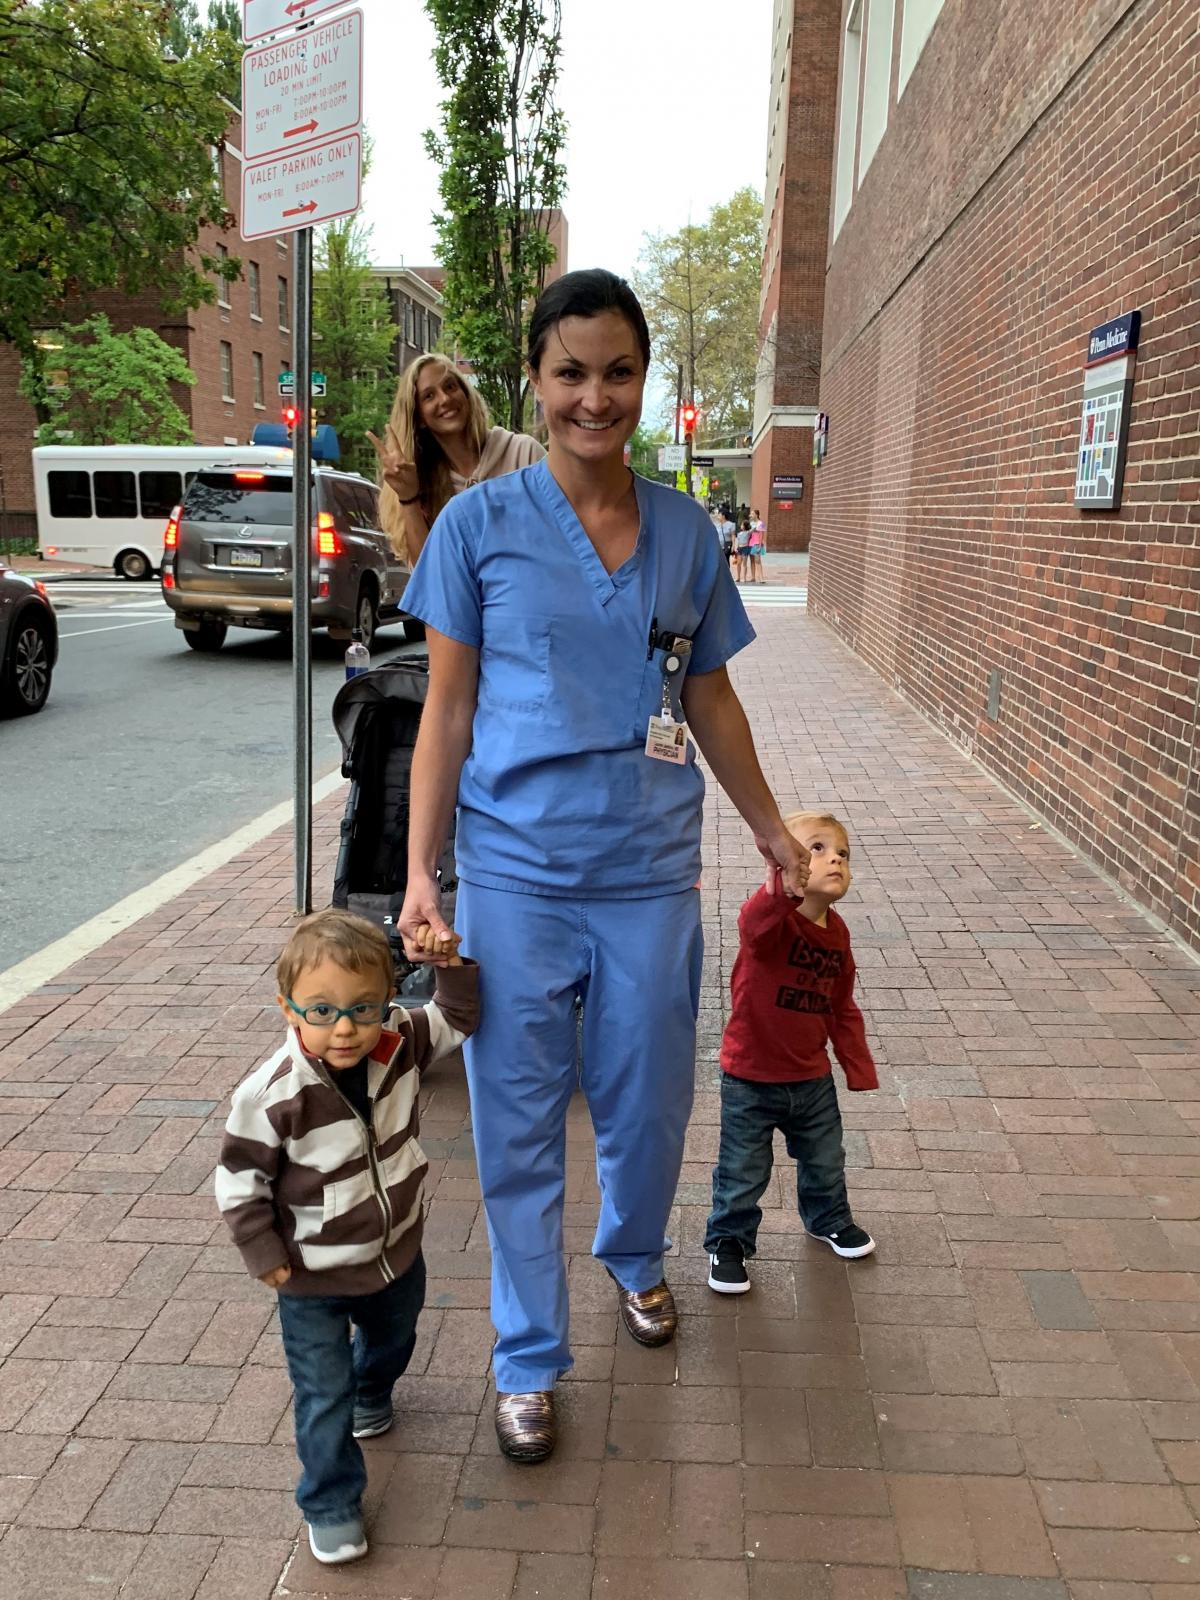 Dr. Lauren Jenkins walks with her two sons, Pierce and Ashton, in Philadelphia in the fall of 2019.